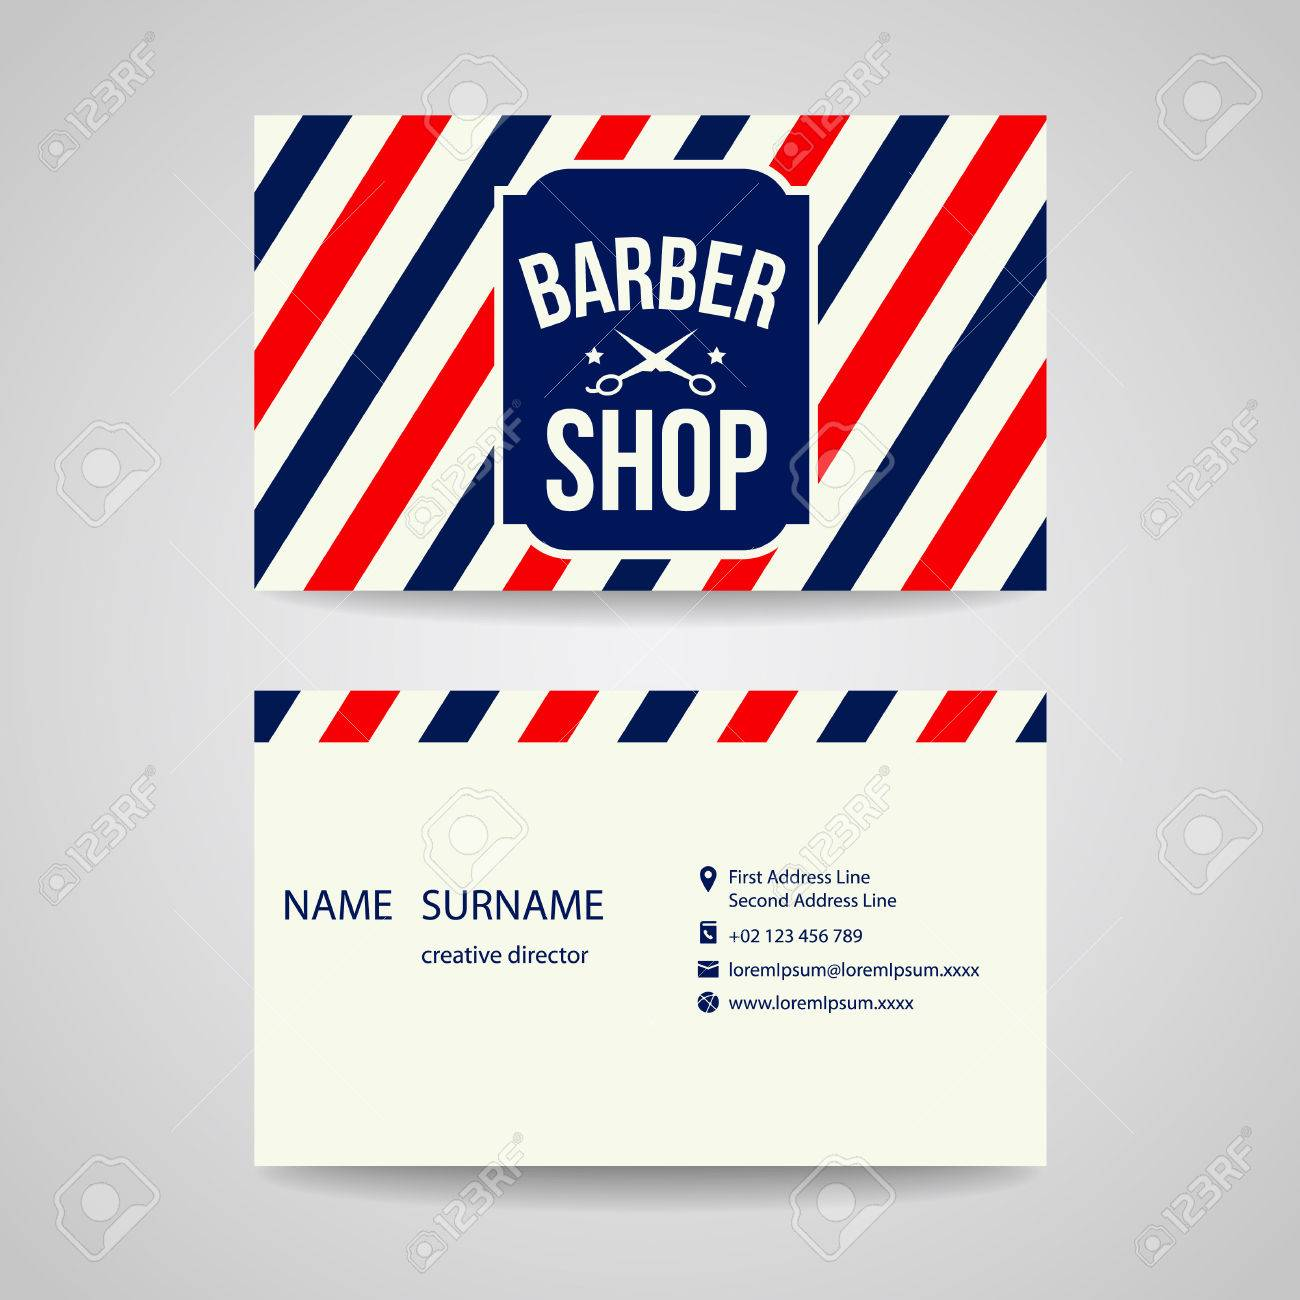 Business card template design for barber shop royalty free cliparts business card template design for barber shop stock vector 39559057 flashek